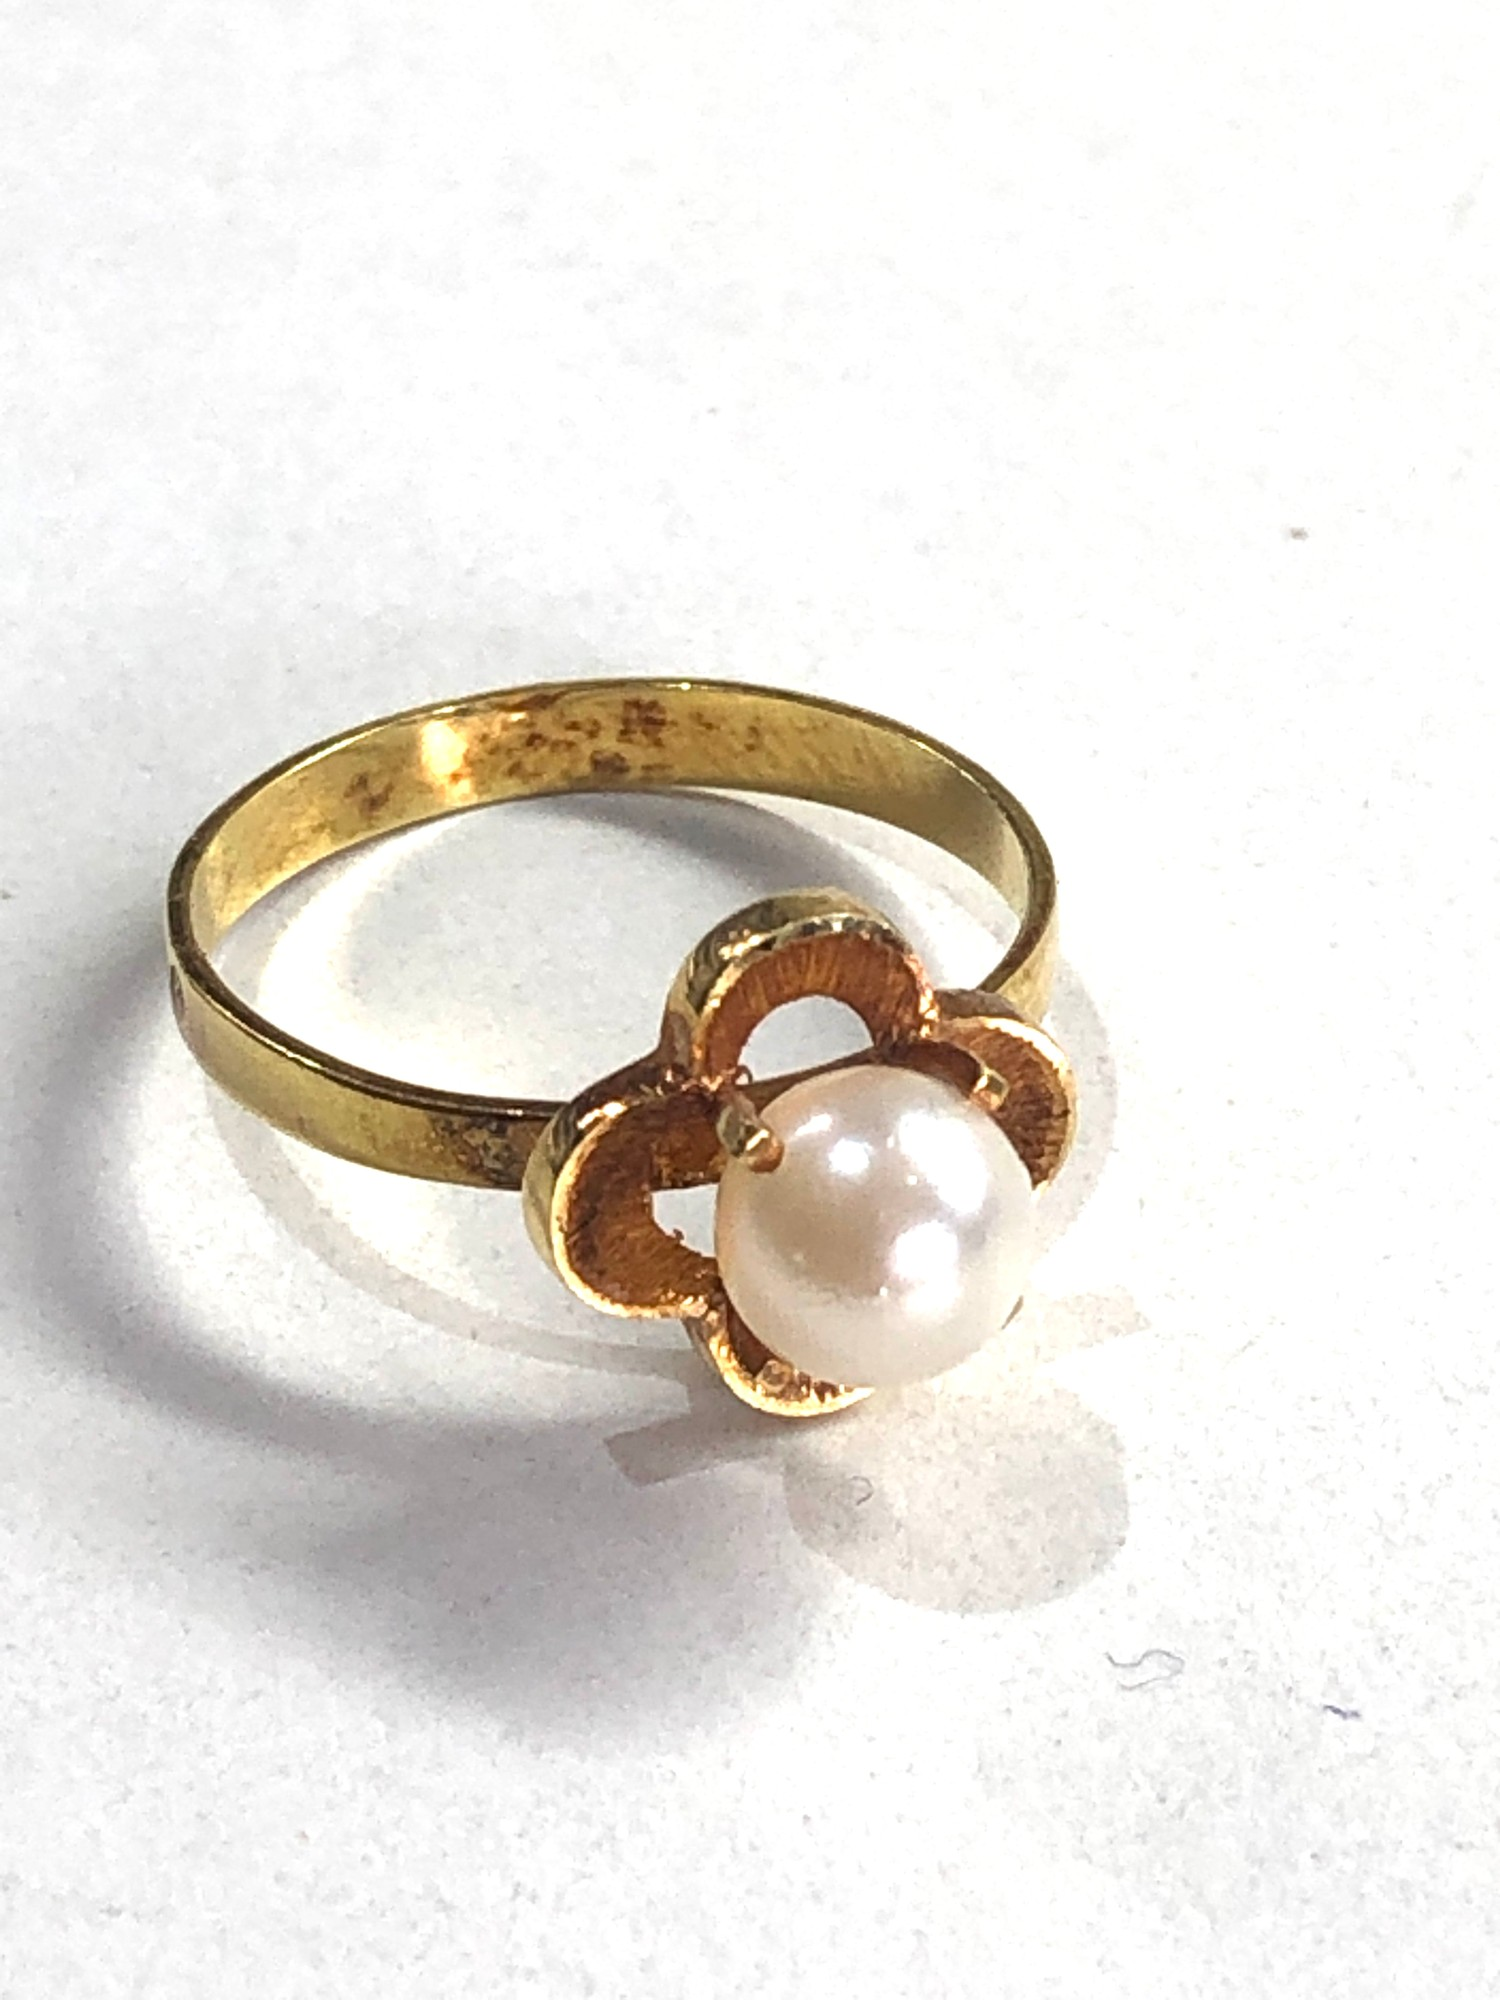 18ct pearl ring 1.7g